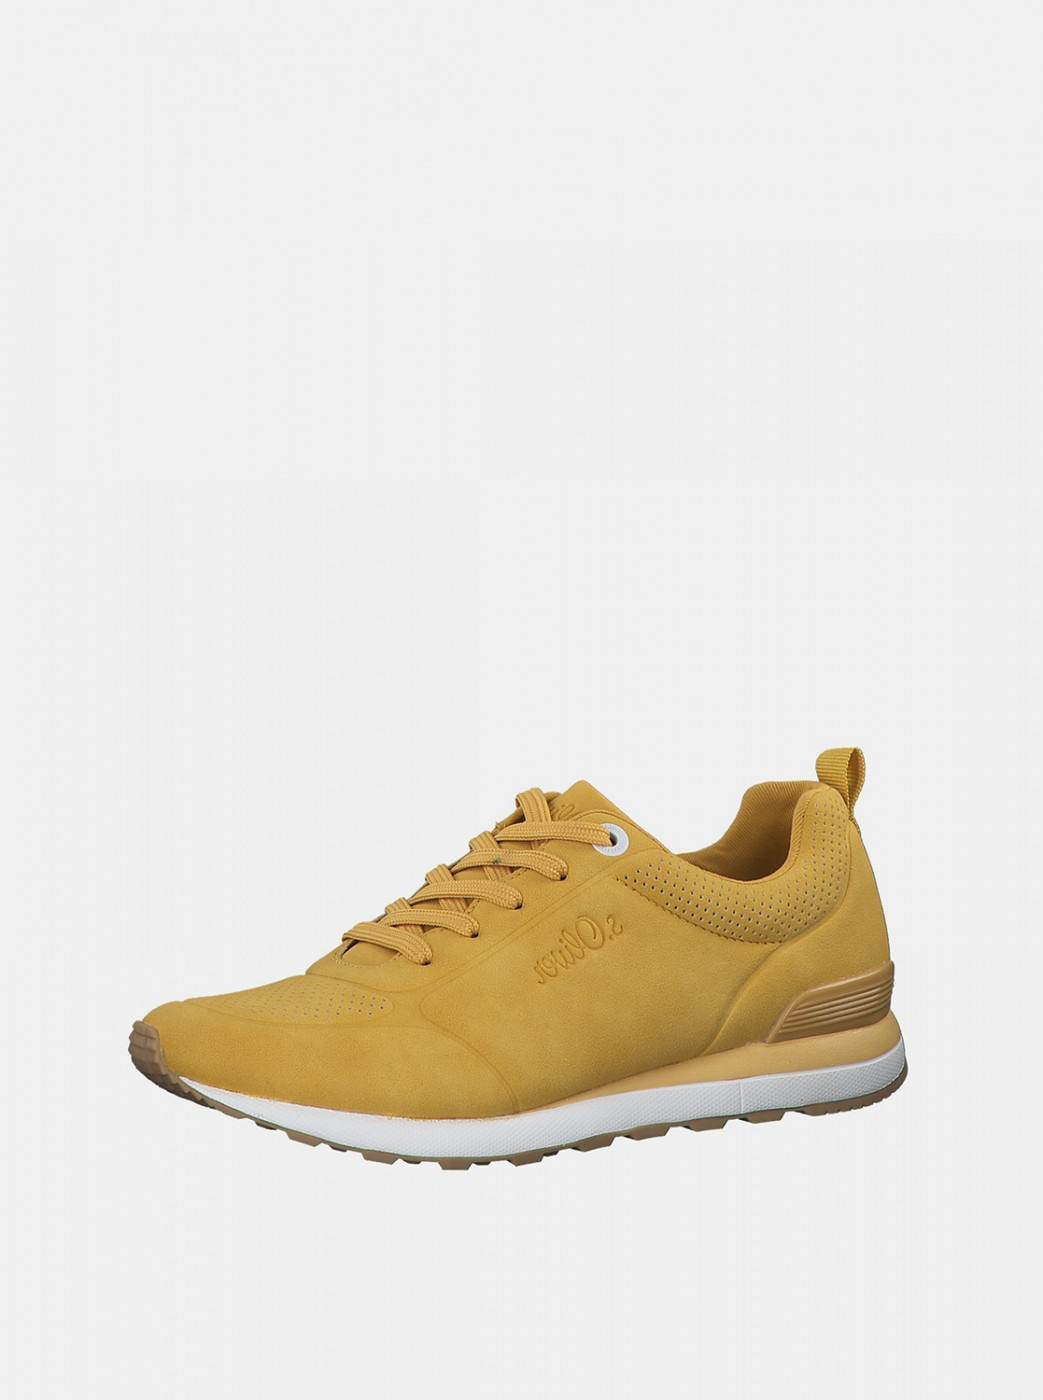 Yellow women's sneakers in suede style s.Oliver